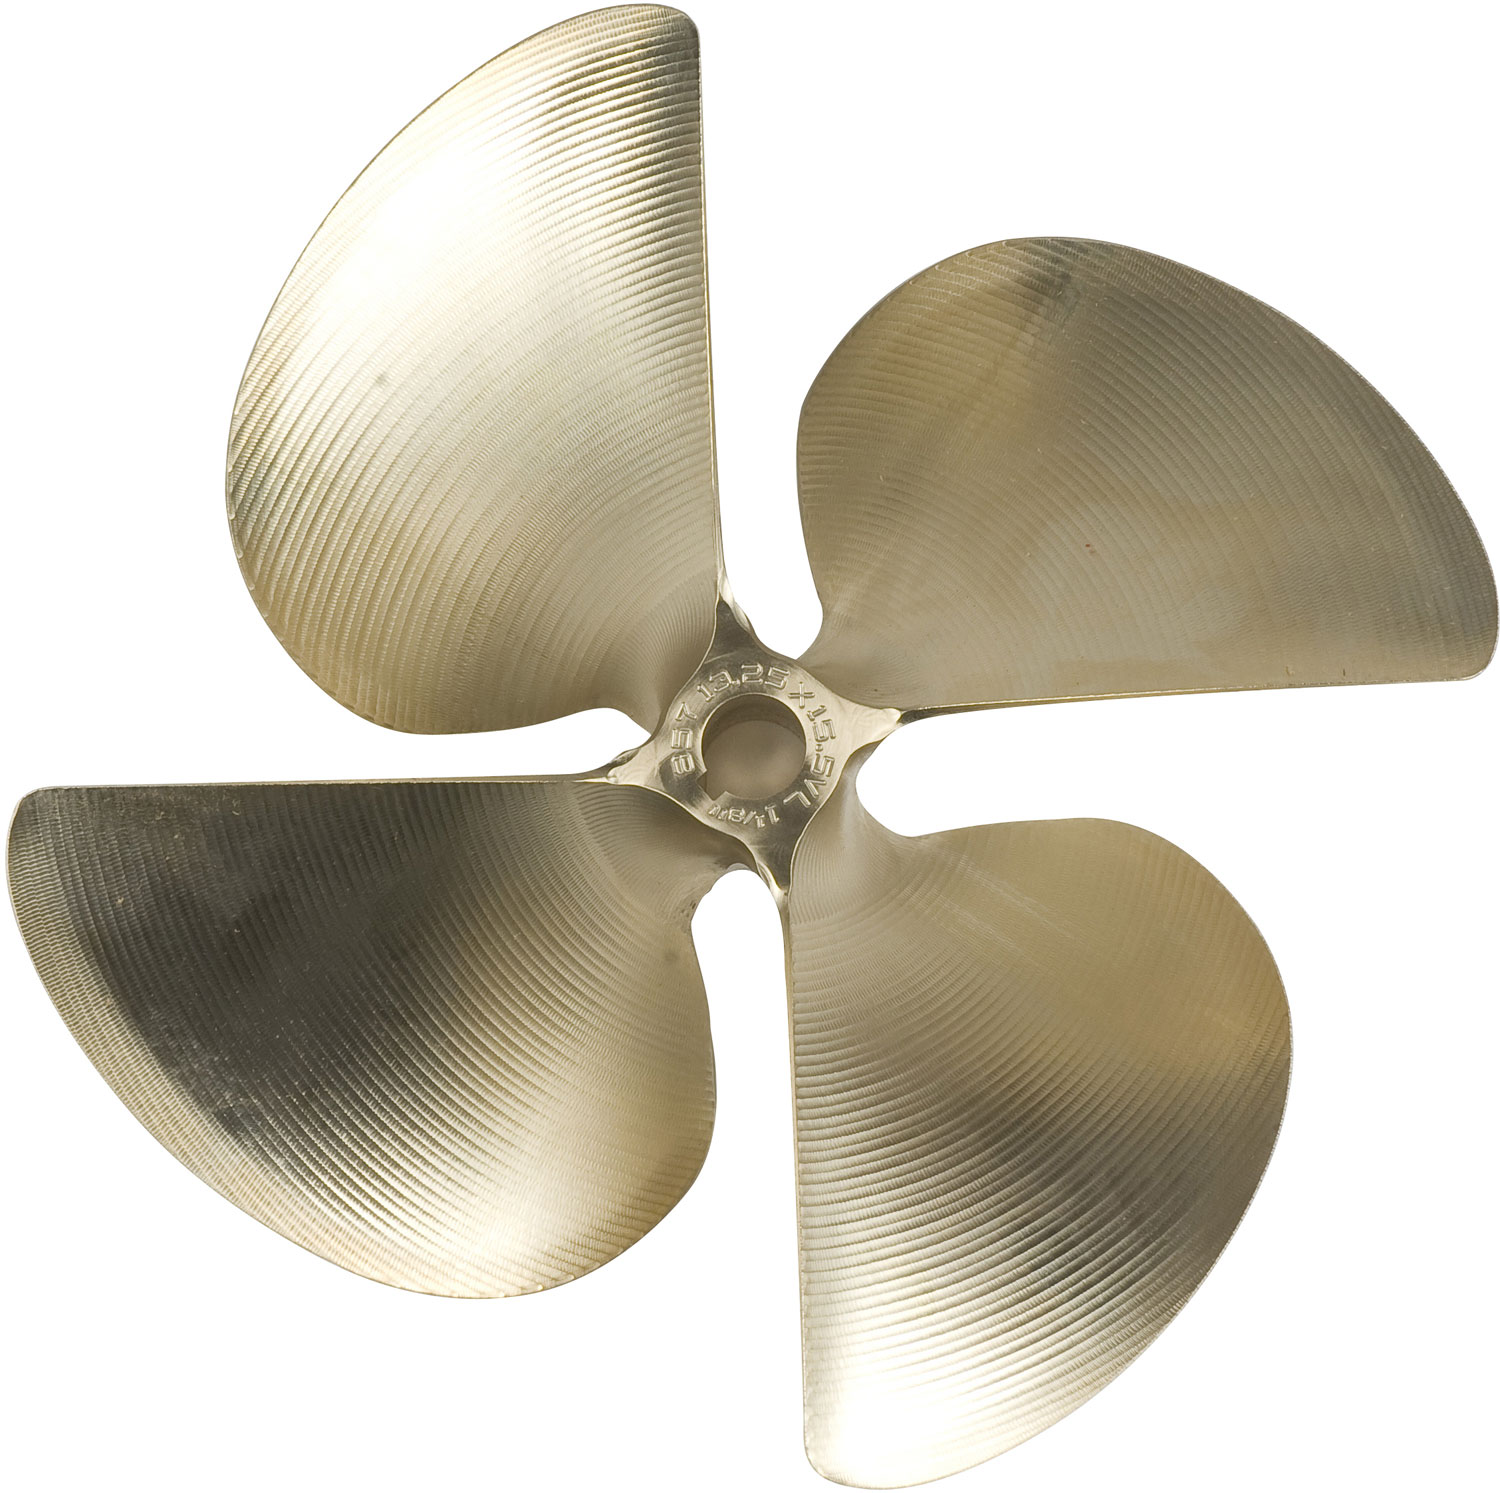 "Hit the water at full speed with the Acme Propeller 1221! The propeller will take you to the distance out on the lake, the river, the ocean, or even that next epic fishing adventure. Even pull your friends on a wakeboard and never worry about losing power or under-performing with this propeller. This blade is a great upgrade to your motor boat and works with most outboard and inboard motor configurations. Get out on the water with Acme power!Key Features of the Acme 1221 Propeller Blades: 3 Diameter: 13.00 Pitch: 10.500 Cup: 0.080 Bore: Spline; 1 1/8"" Rotation: Left - $157.95"